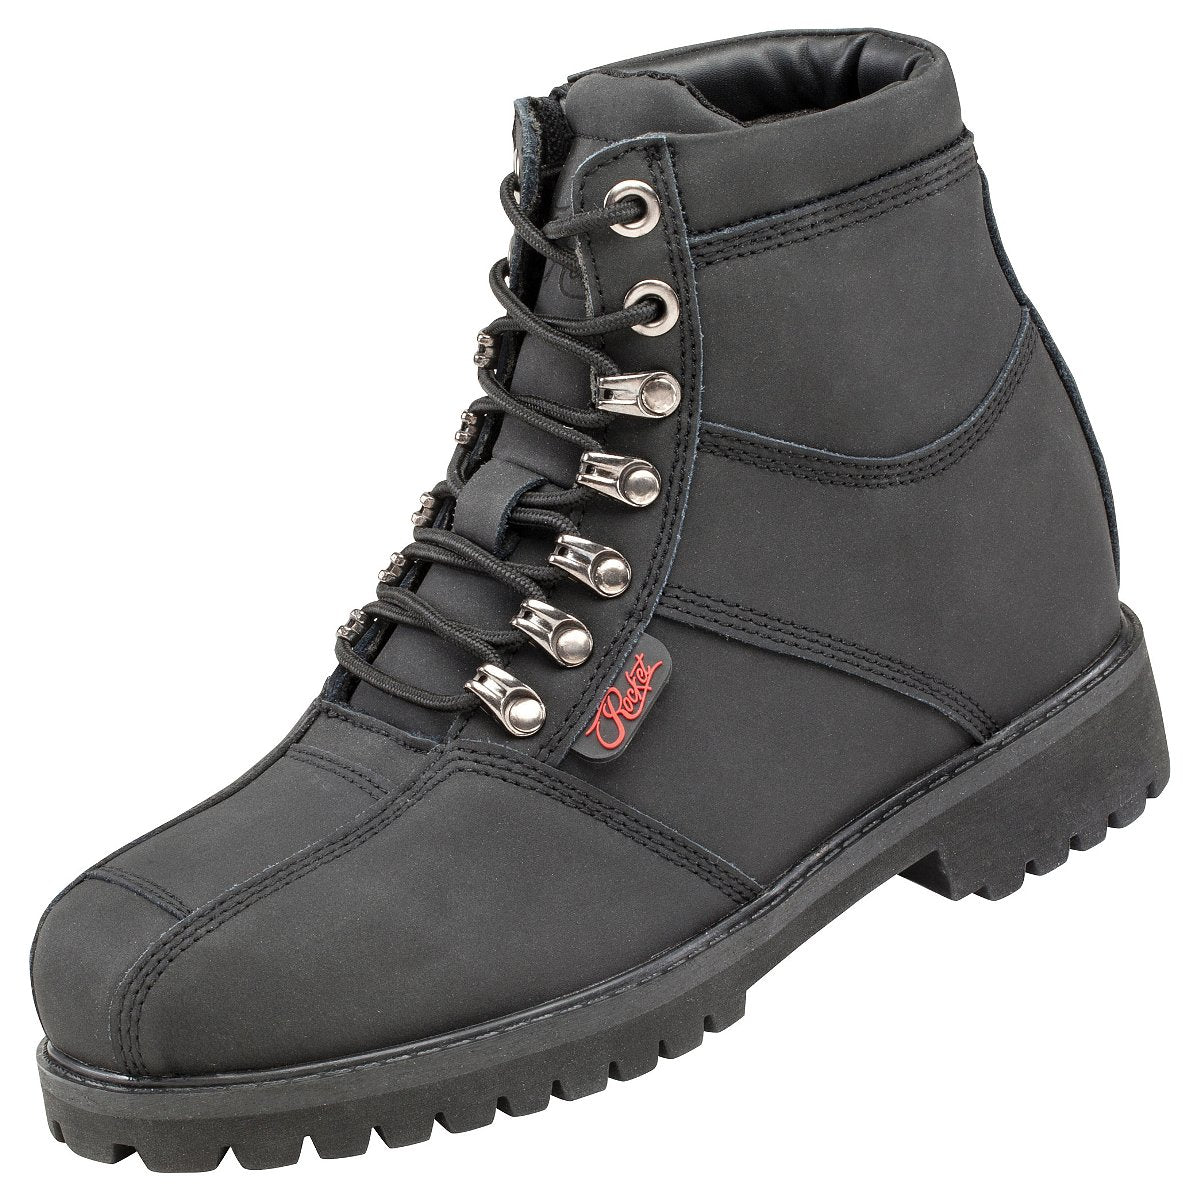 Joe Rocket Rebellion Women's Street Boots - 1507